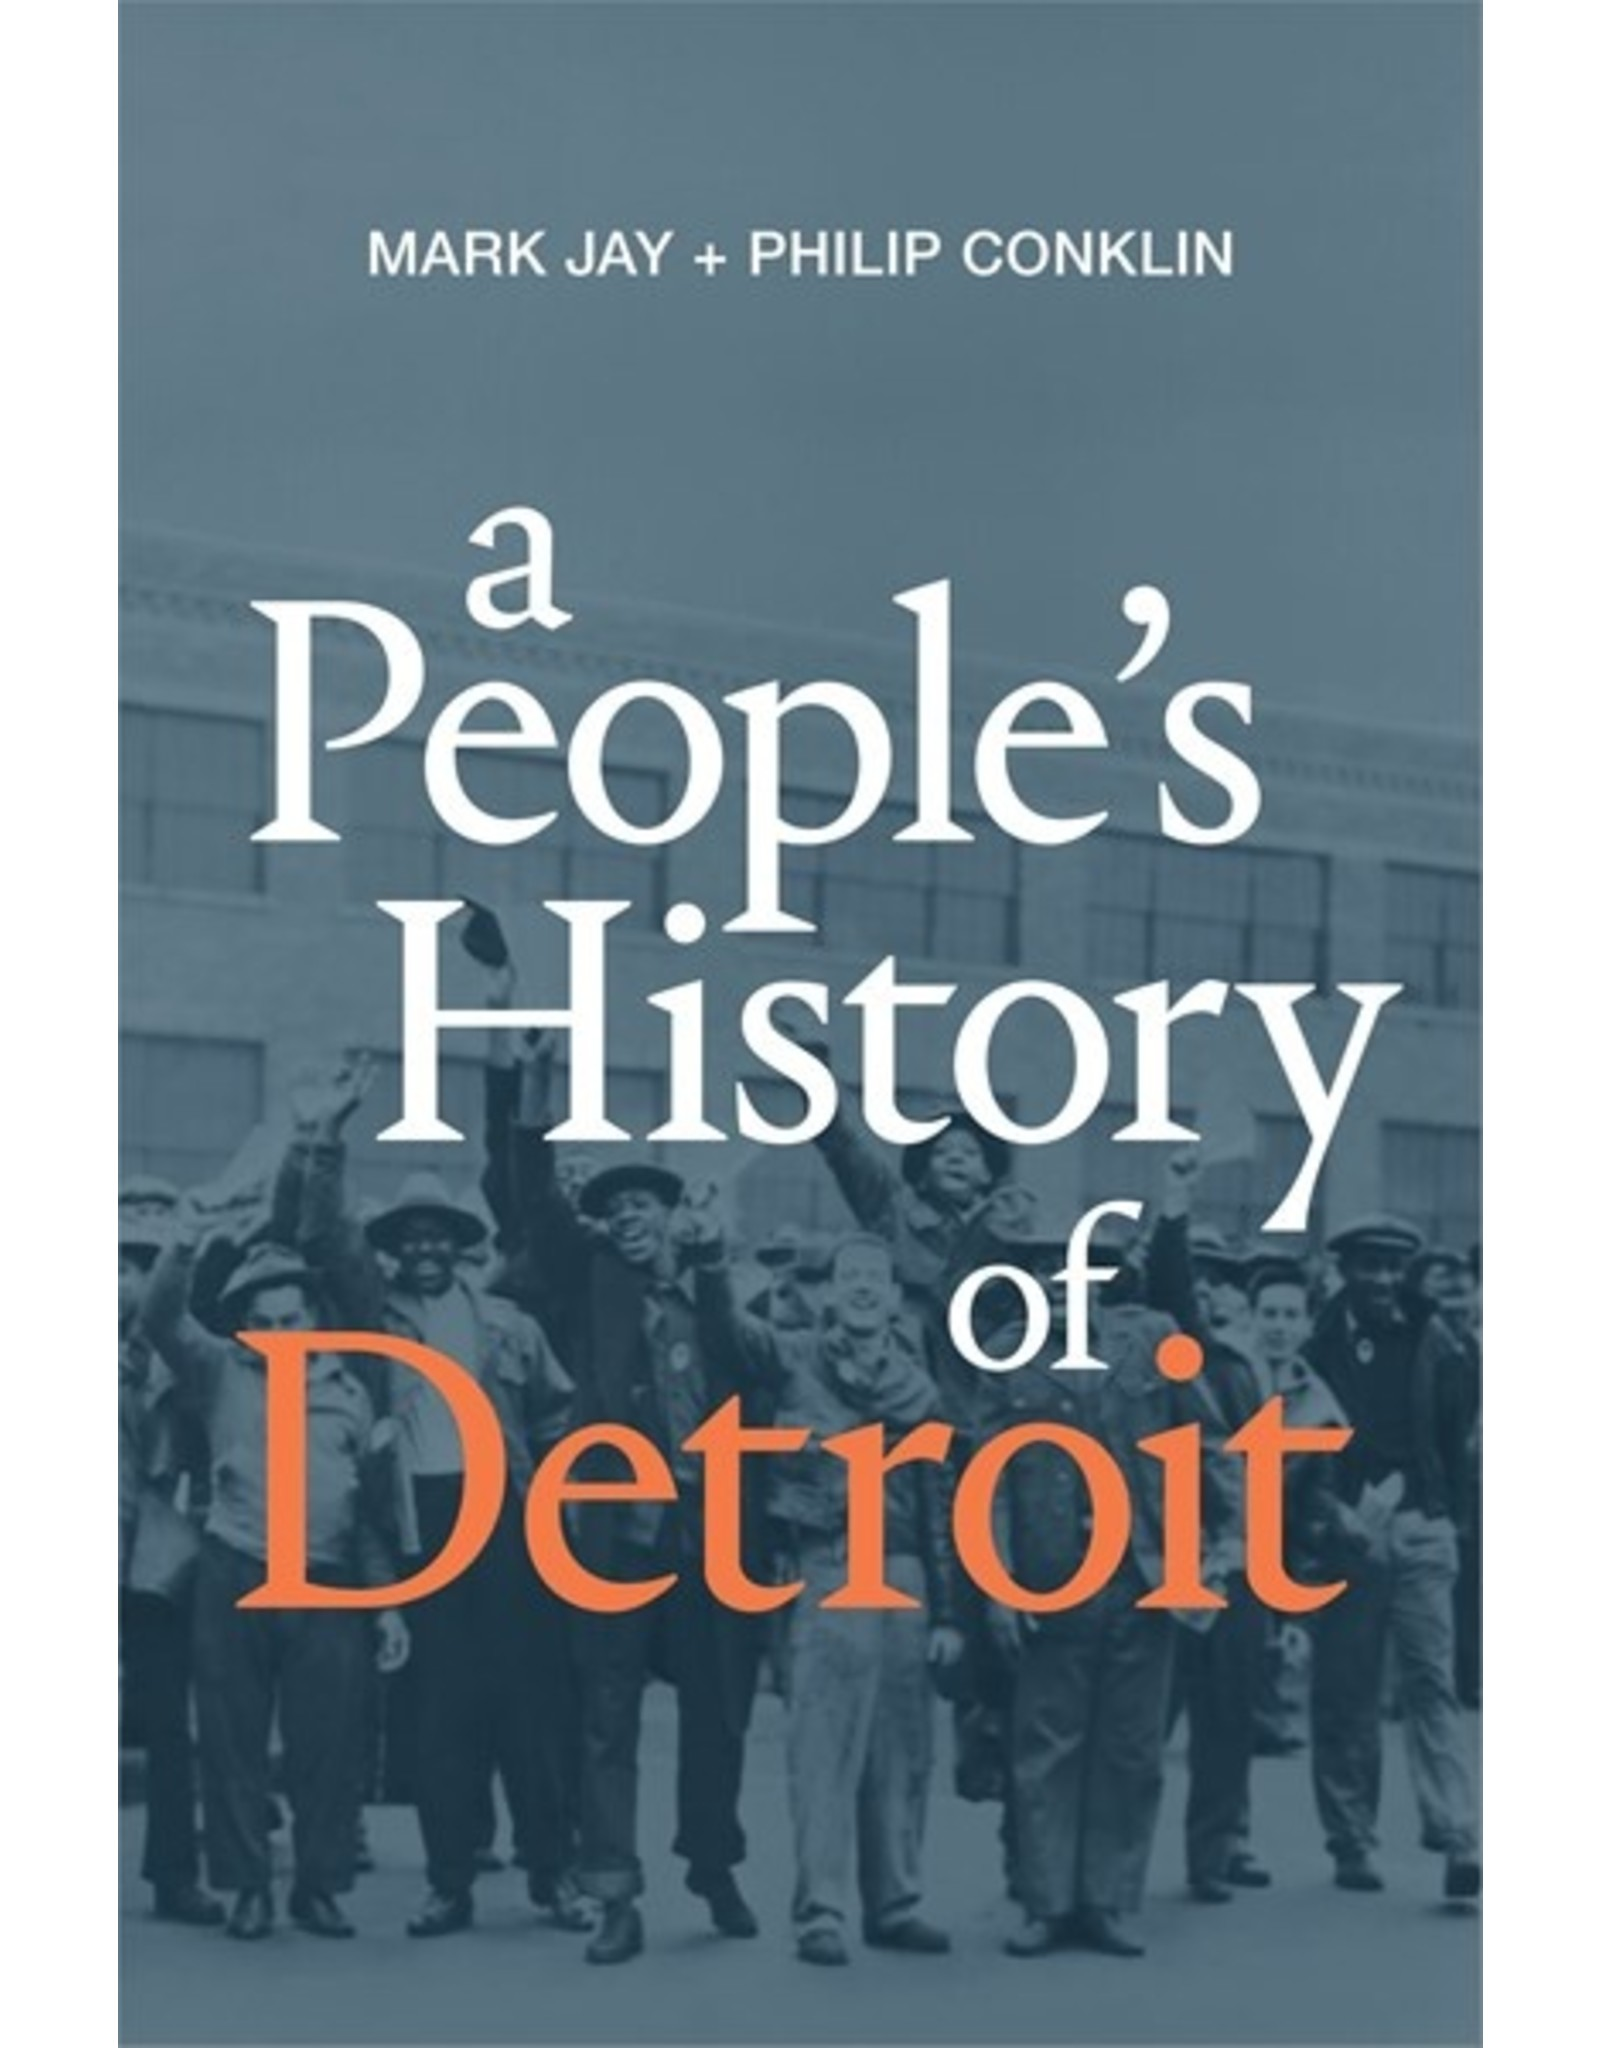 Books A People's History of Detroit by Mark Jay & Philip Conklin